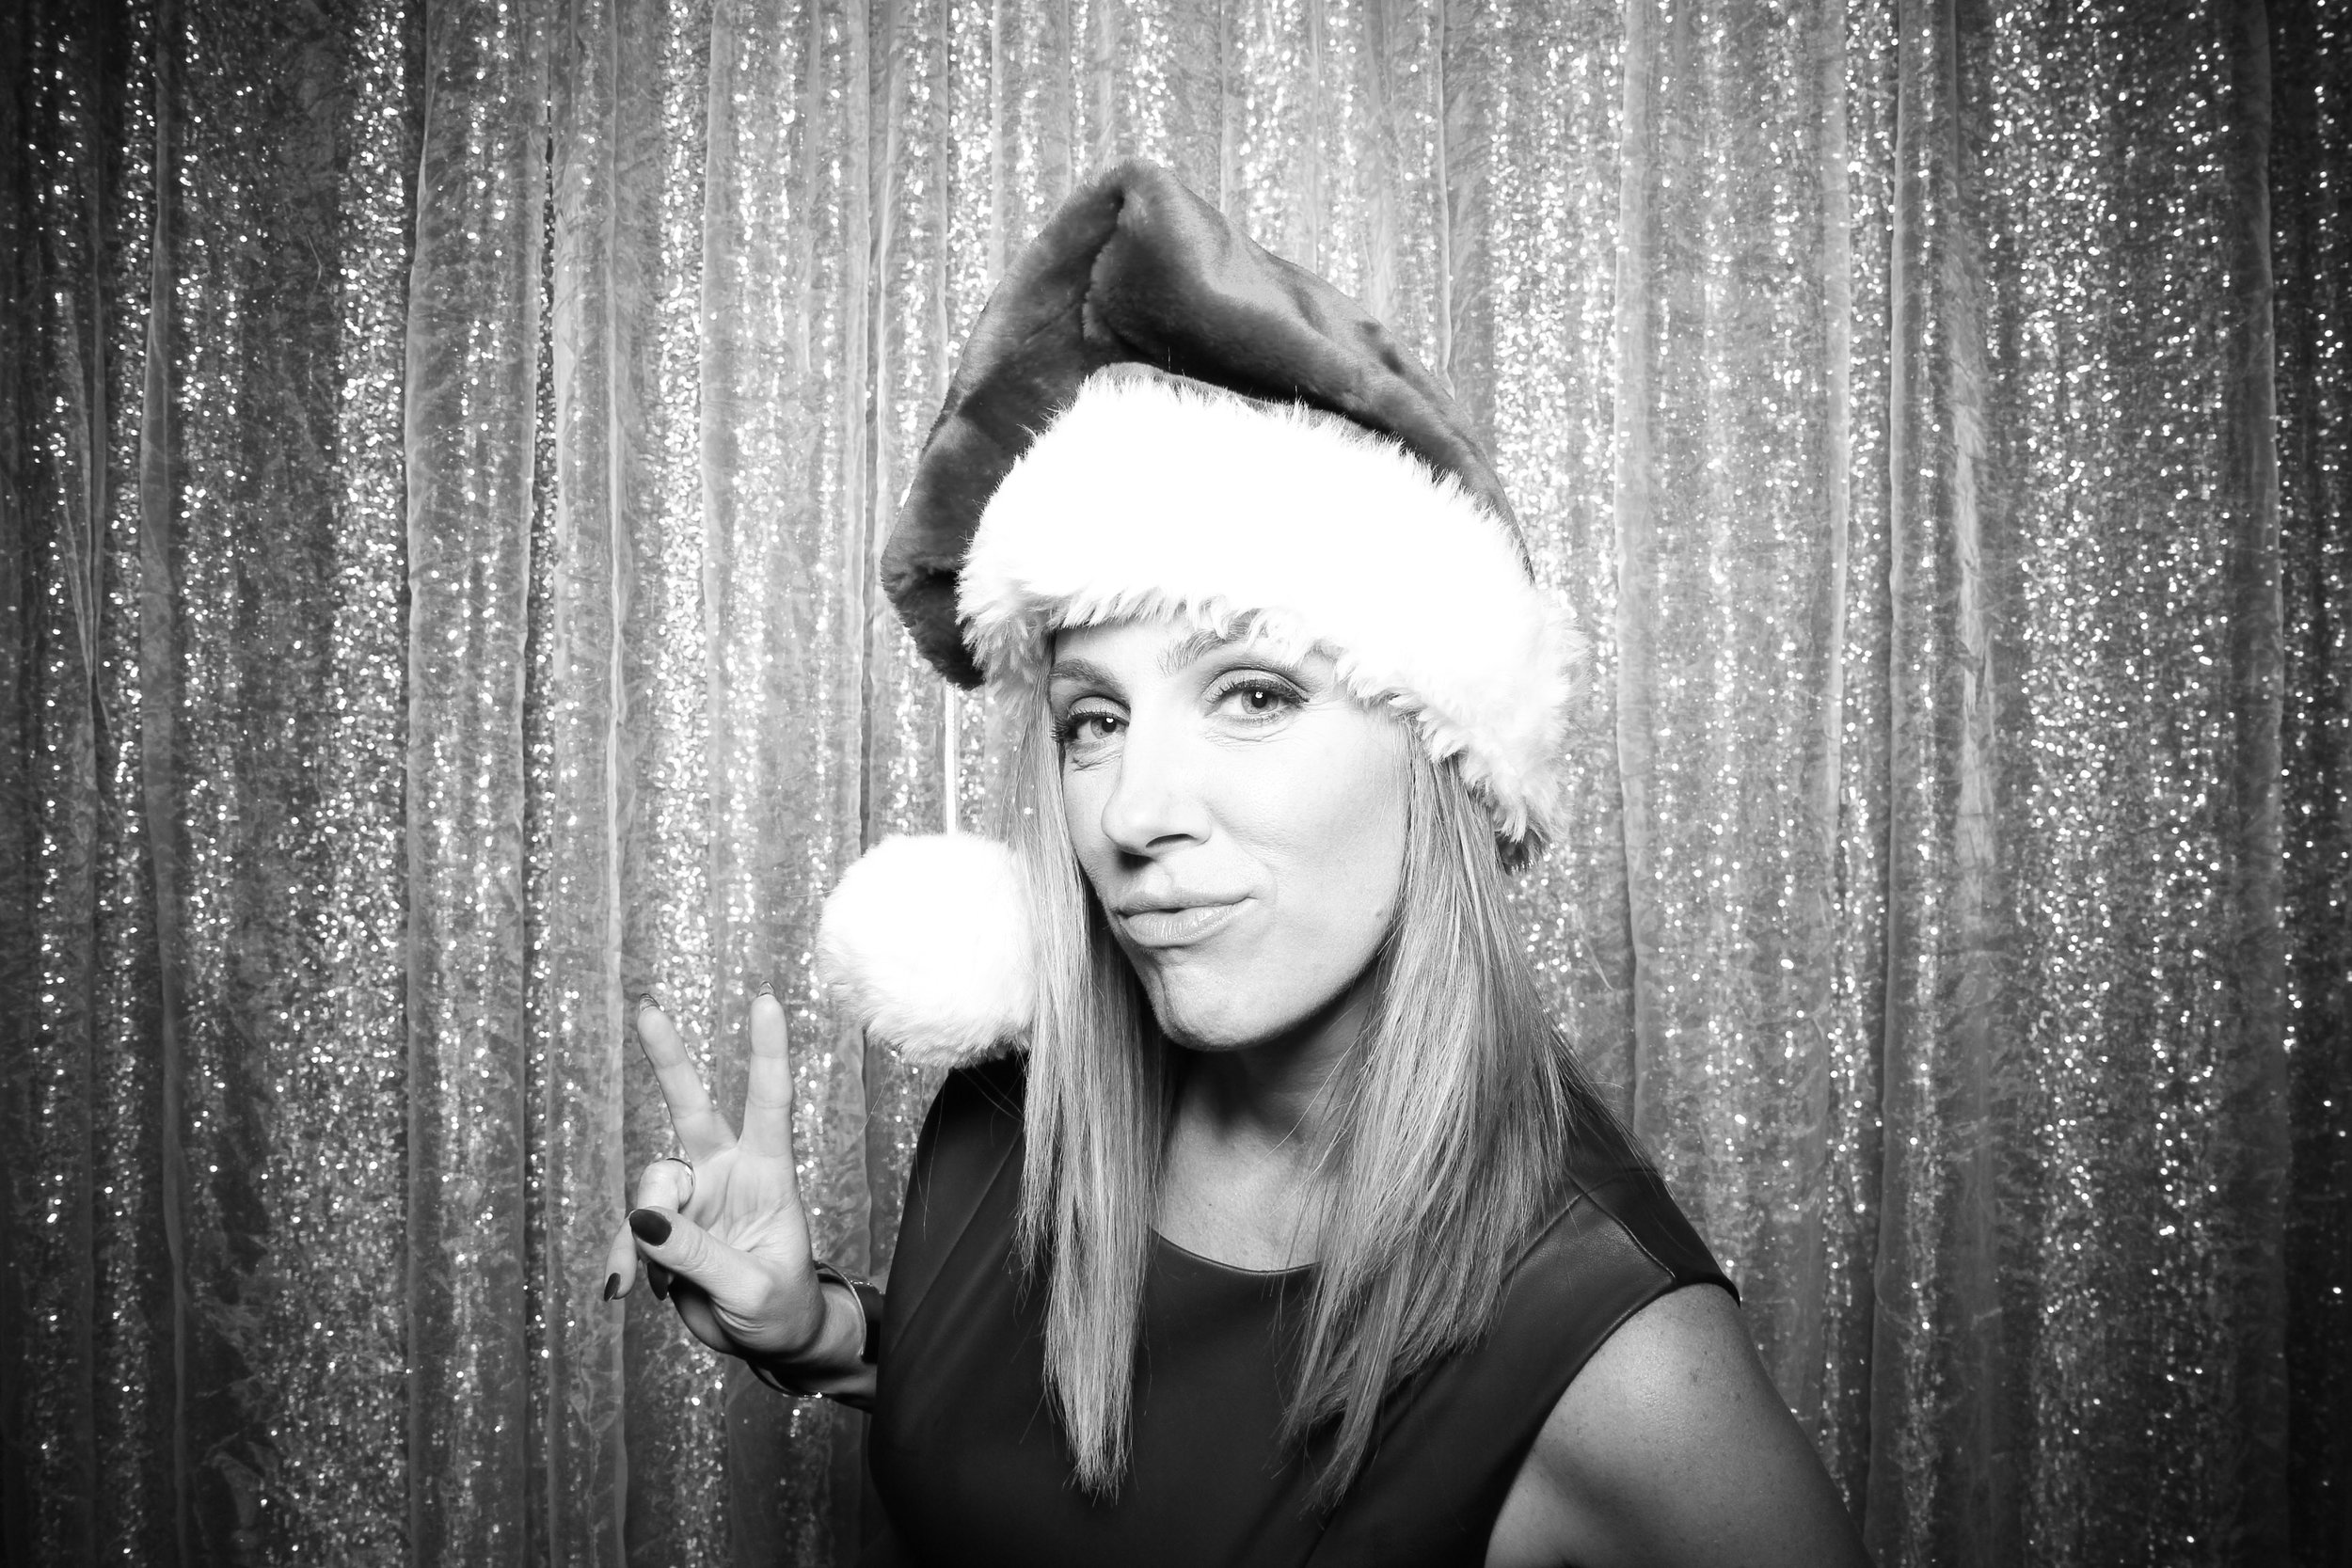 Chicago_Vintage_Photobooth_Montgomery_Club_Holiday_Party_07.jpg